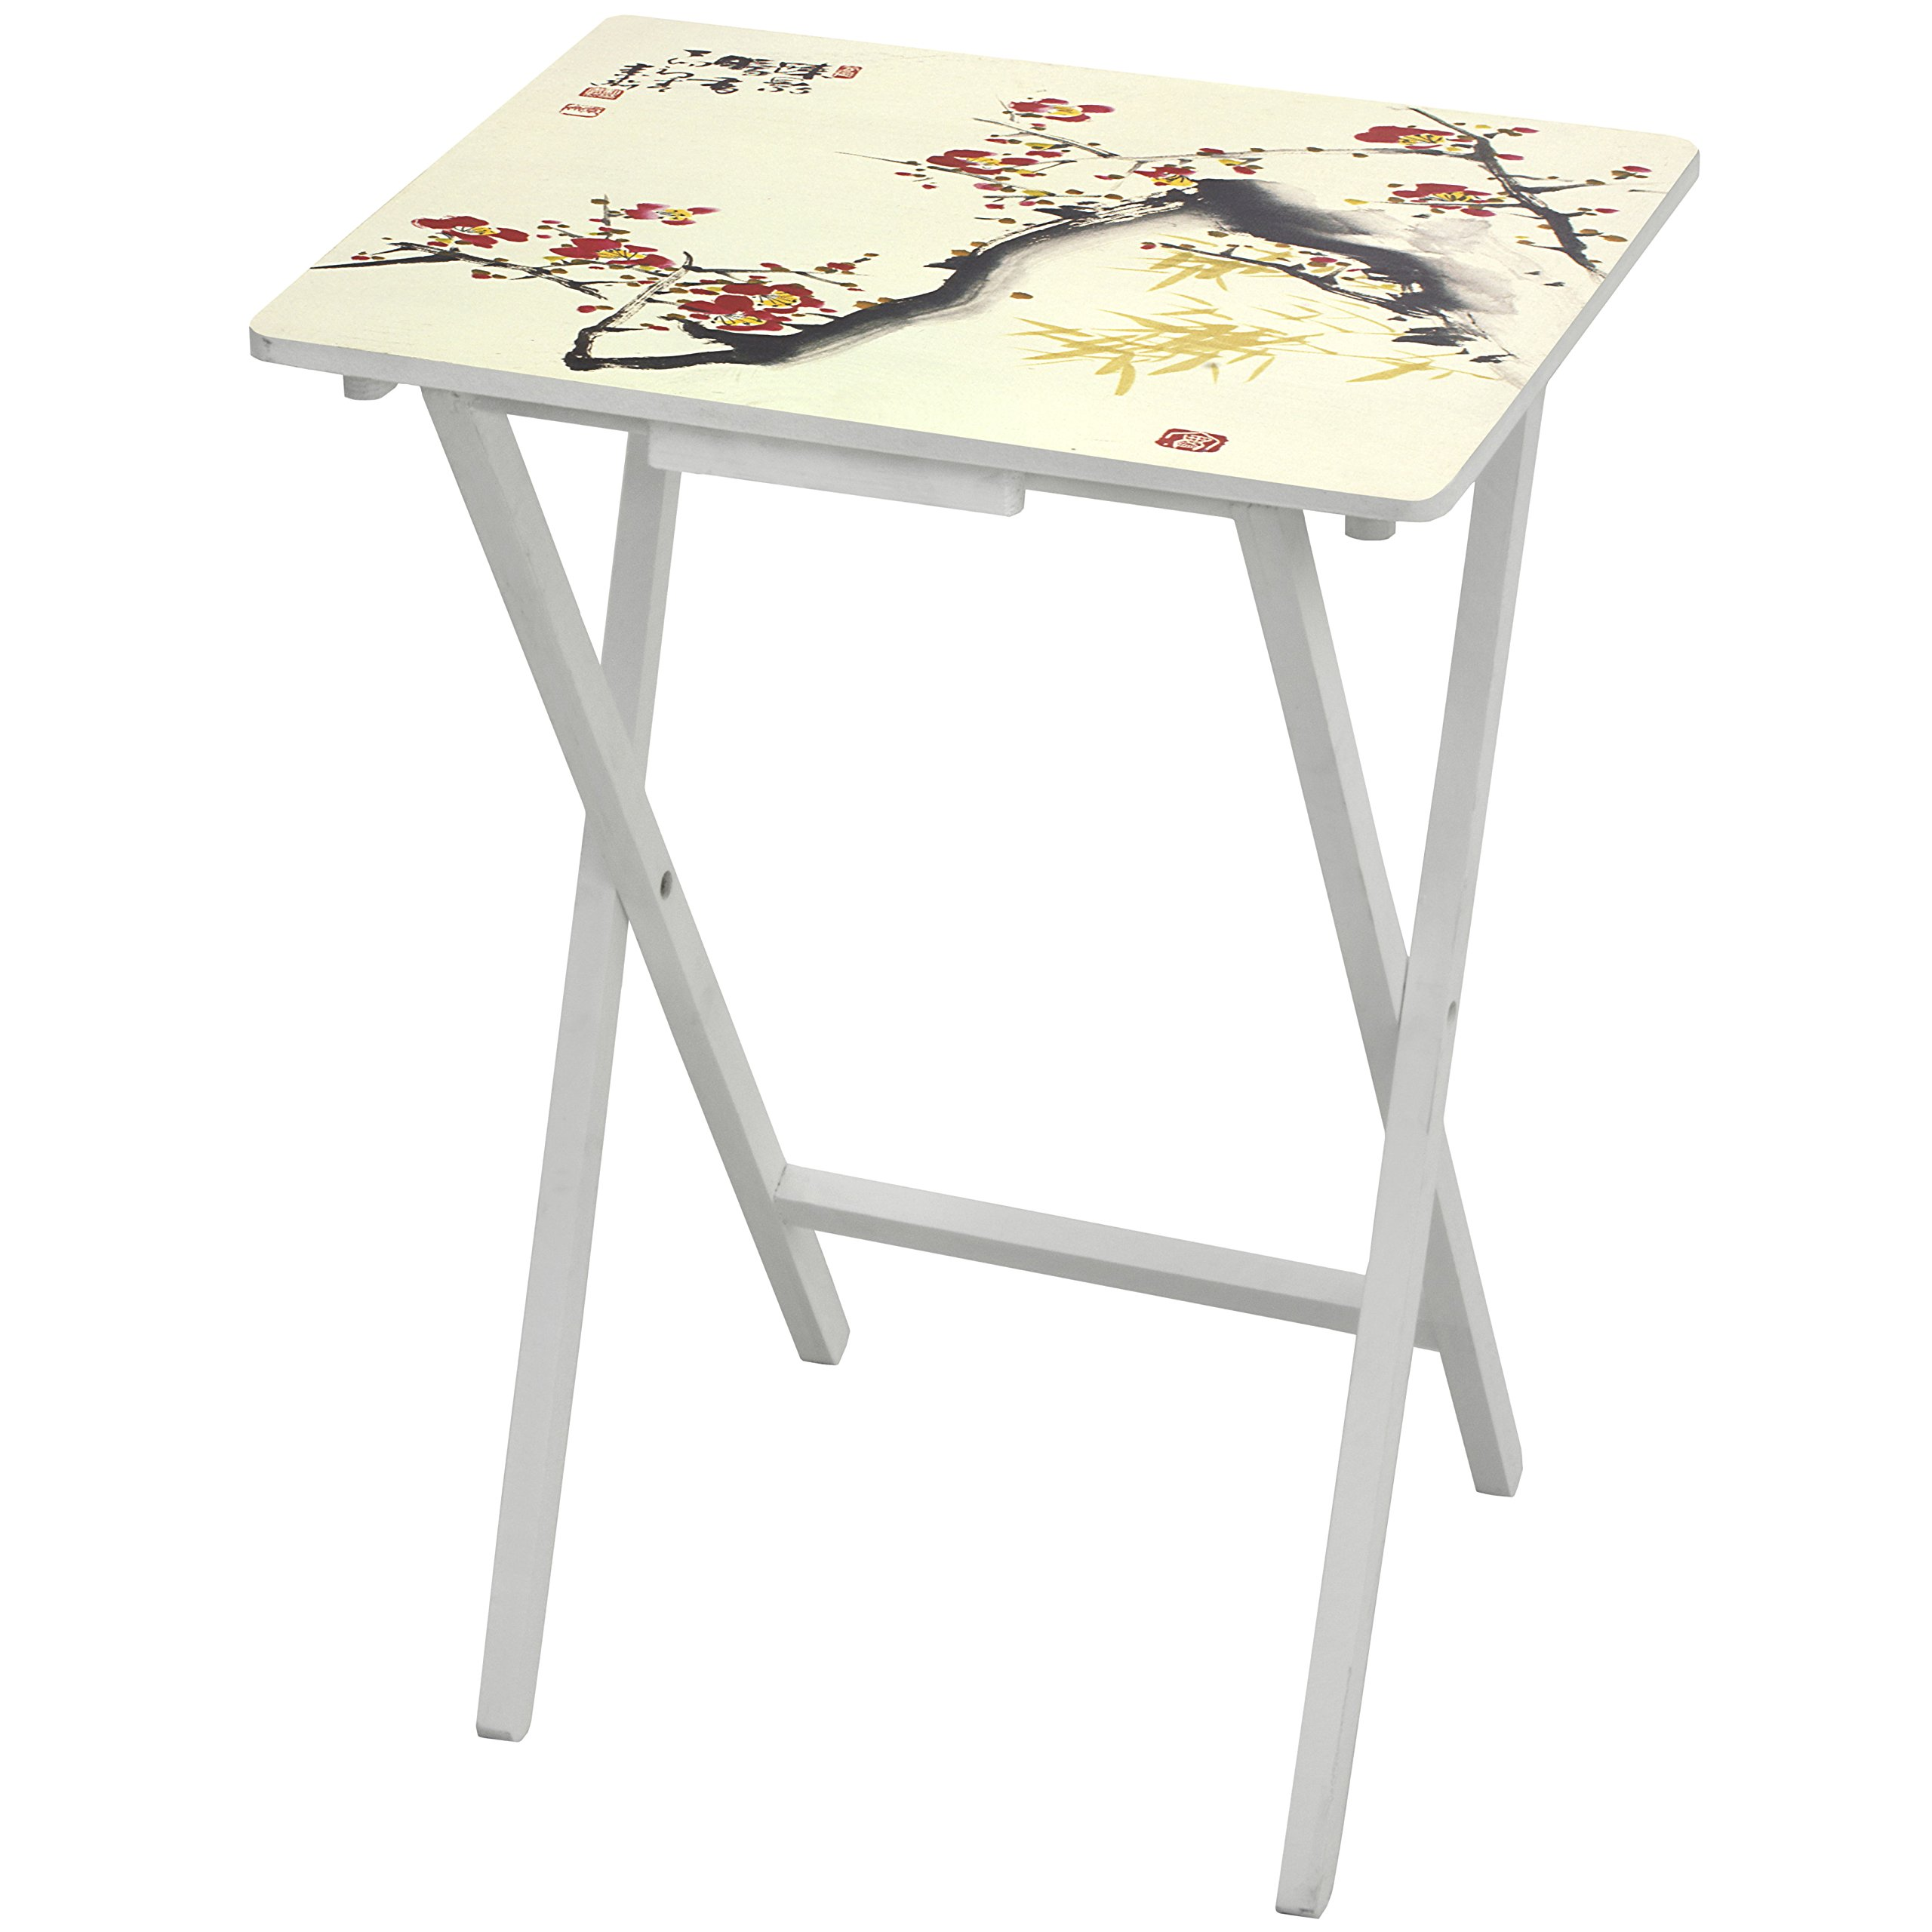 Oriental Furniture CAN-TV-LOVE-A Cherry Blossom TV Tray